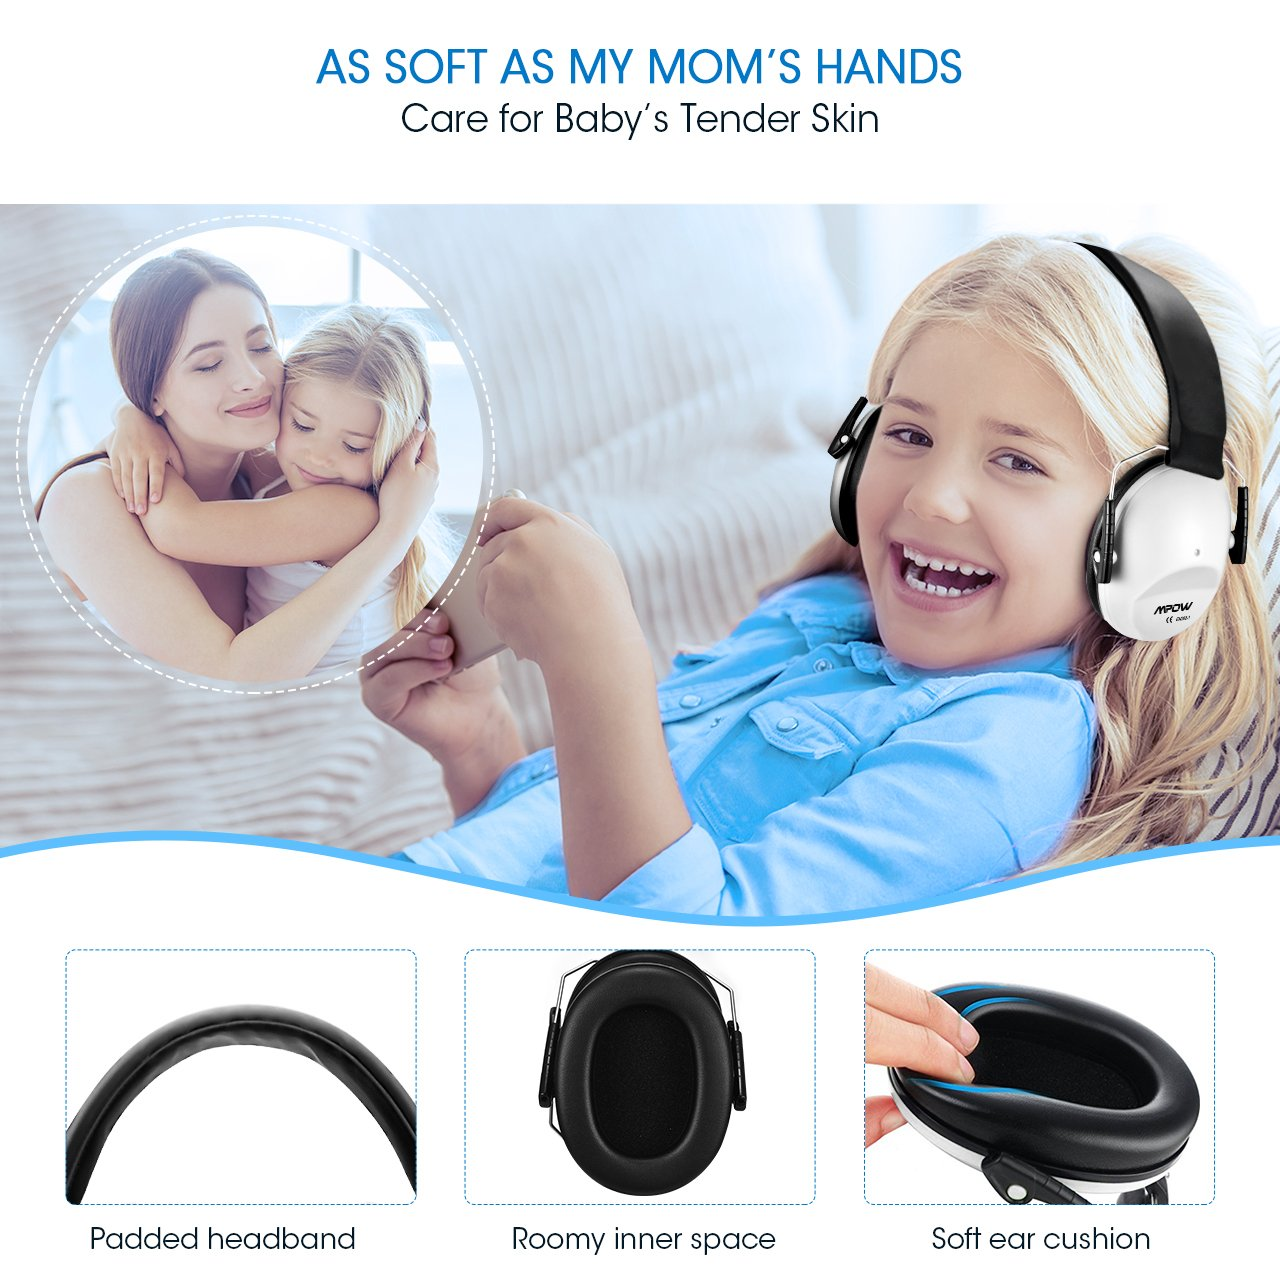 Mpow 068 Kids Ear Protection Safety Ear Muffs, NRR 25dB Noise Reduction Hearing Protection for Kids, Toddler Ear Protection for Shooting Range Hunting Season for Kids Toddlers Children (White) by Mpow (Image #5)